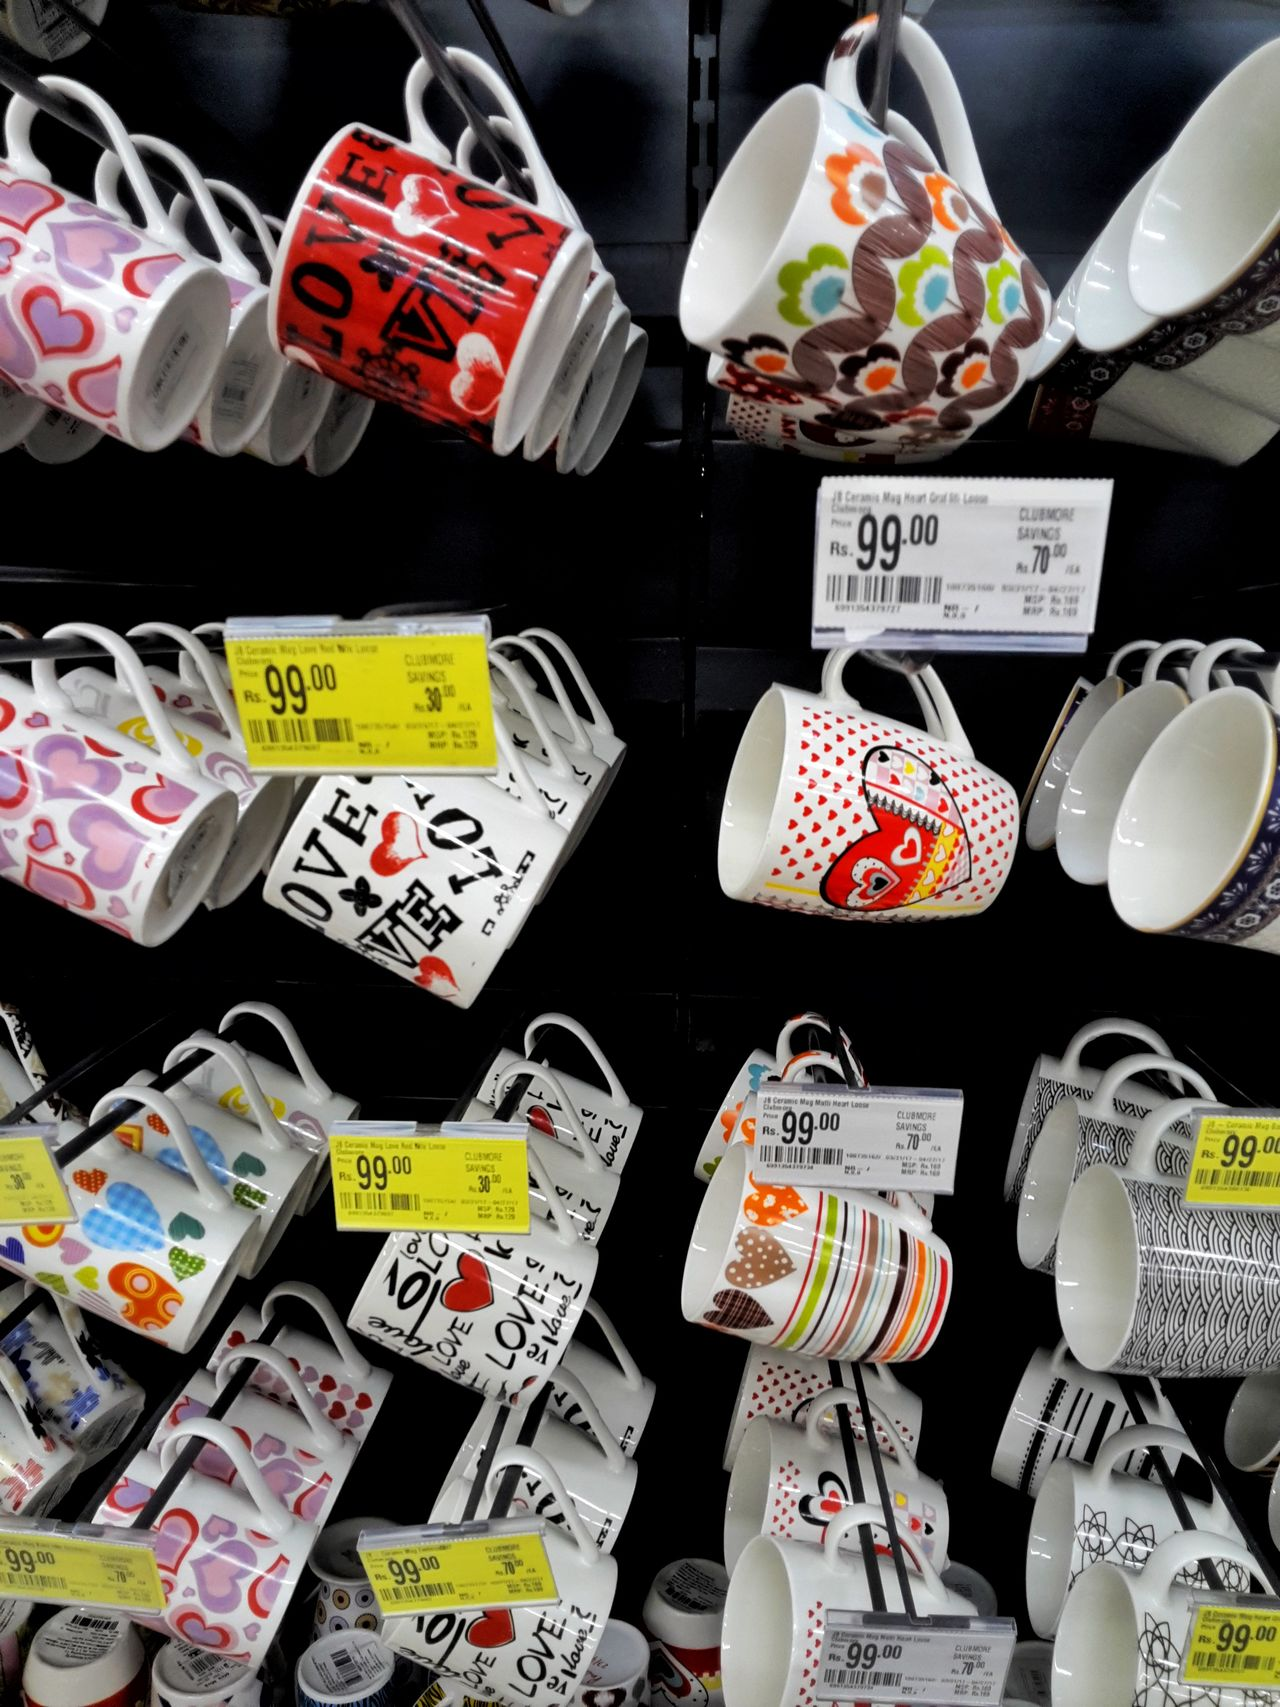 Choice Large Group Of Objects Variation No People Abundance Indoors  Food Close-up Day Cups And Mugs Cups Cupsofcoffee Cups Of Coffe Cup Of Tea Cup Of Coffee Cup EyeEm Best Shots Beautiful Closeup Photography Colorful Colors Color Colors and patterns